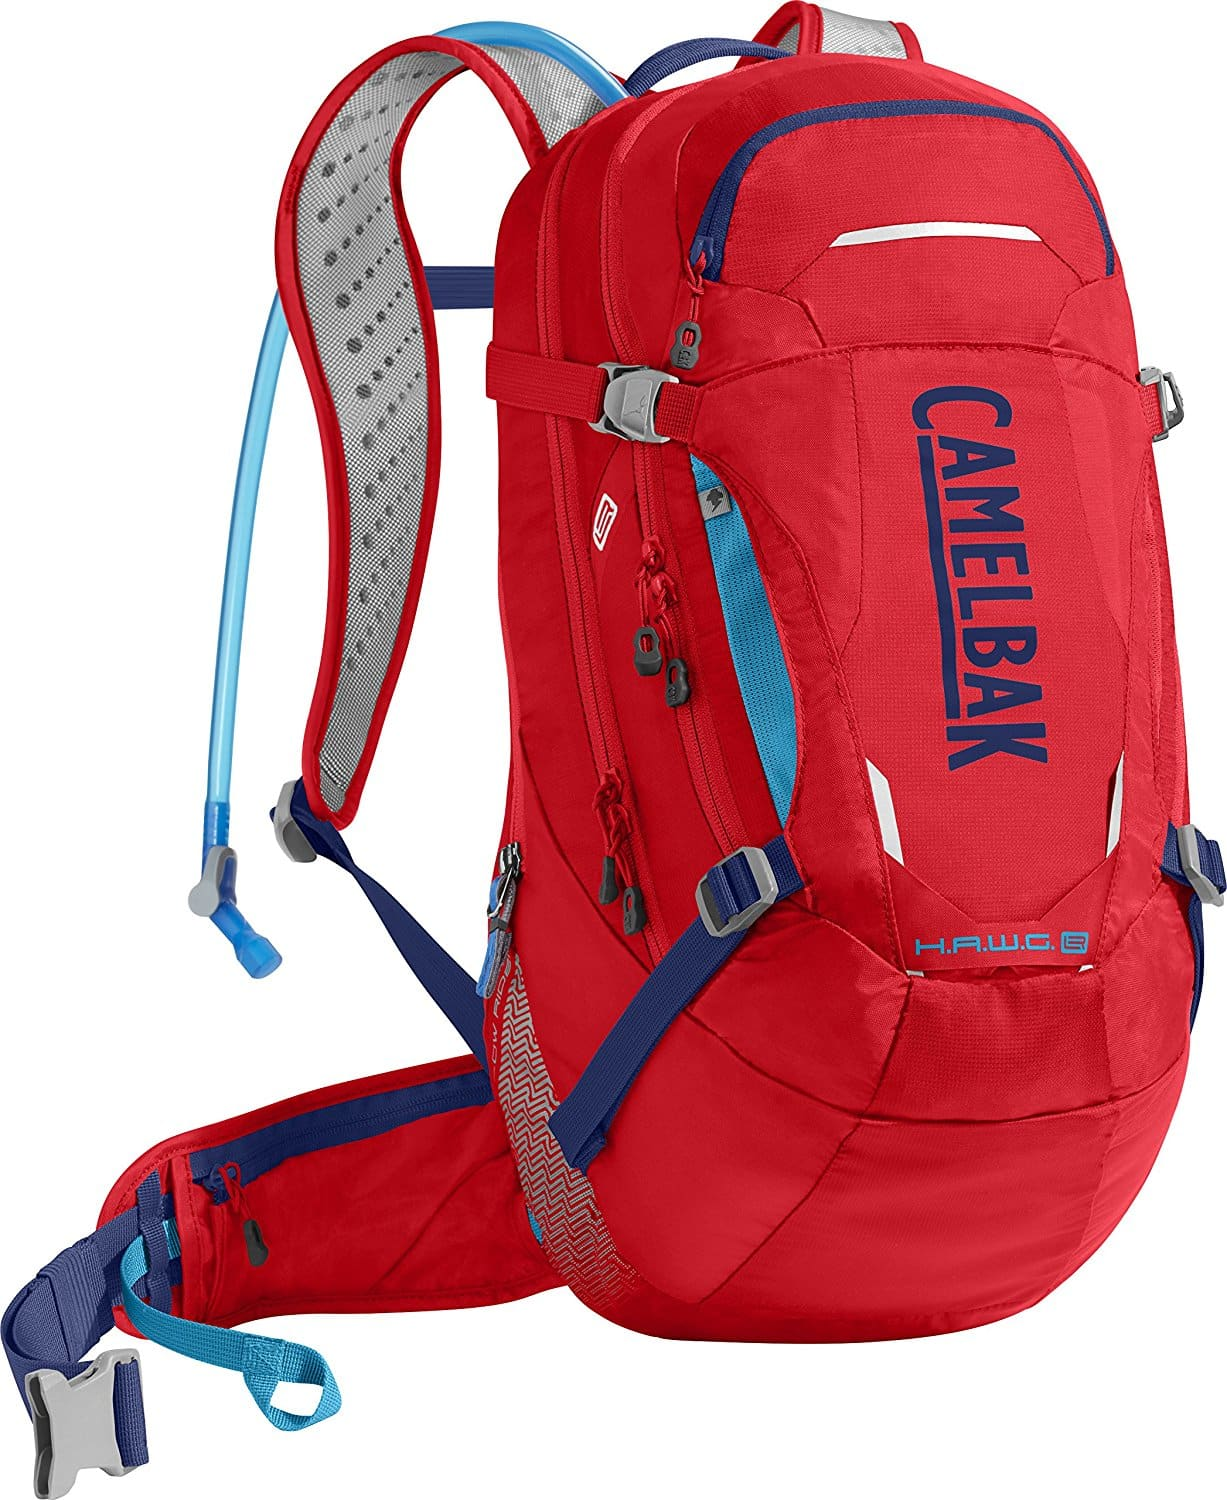 What Are The Best Hydration Packs For Mountain Biking In ...